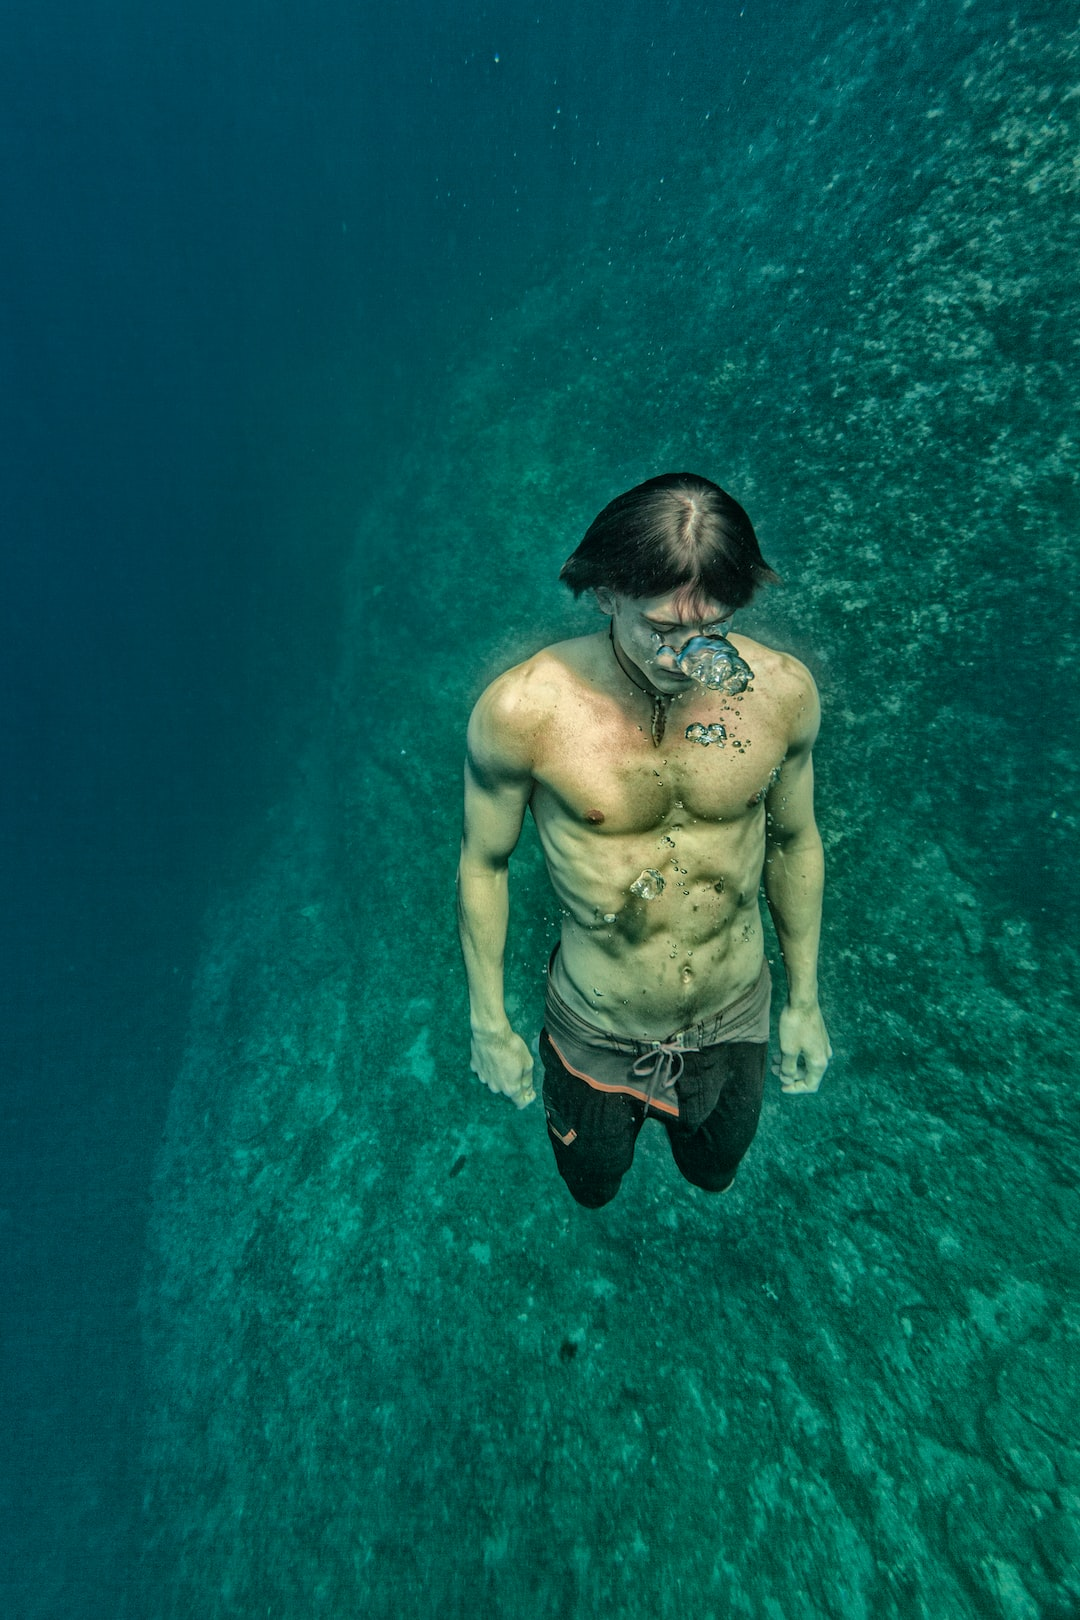 Shirtless Man submerged Underwater with air bubbles.